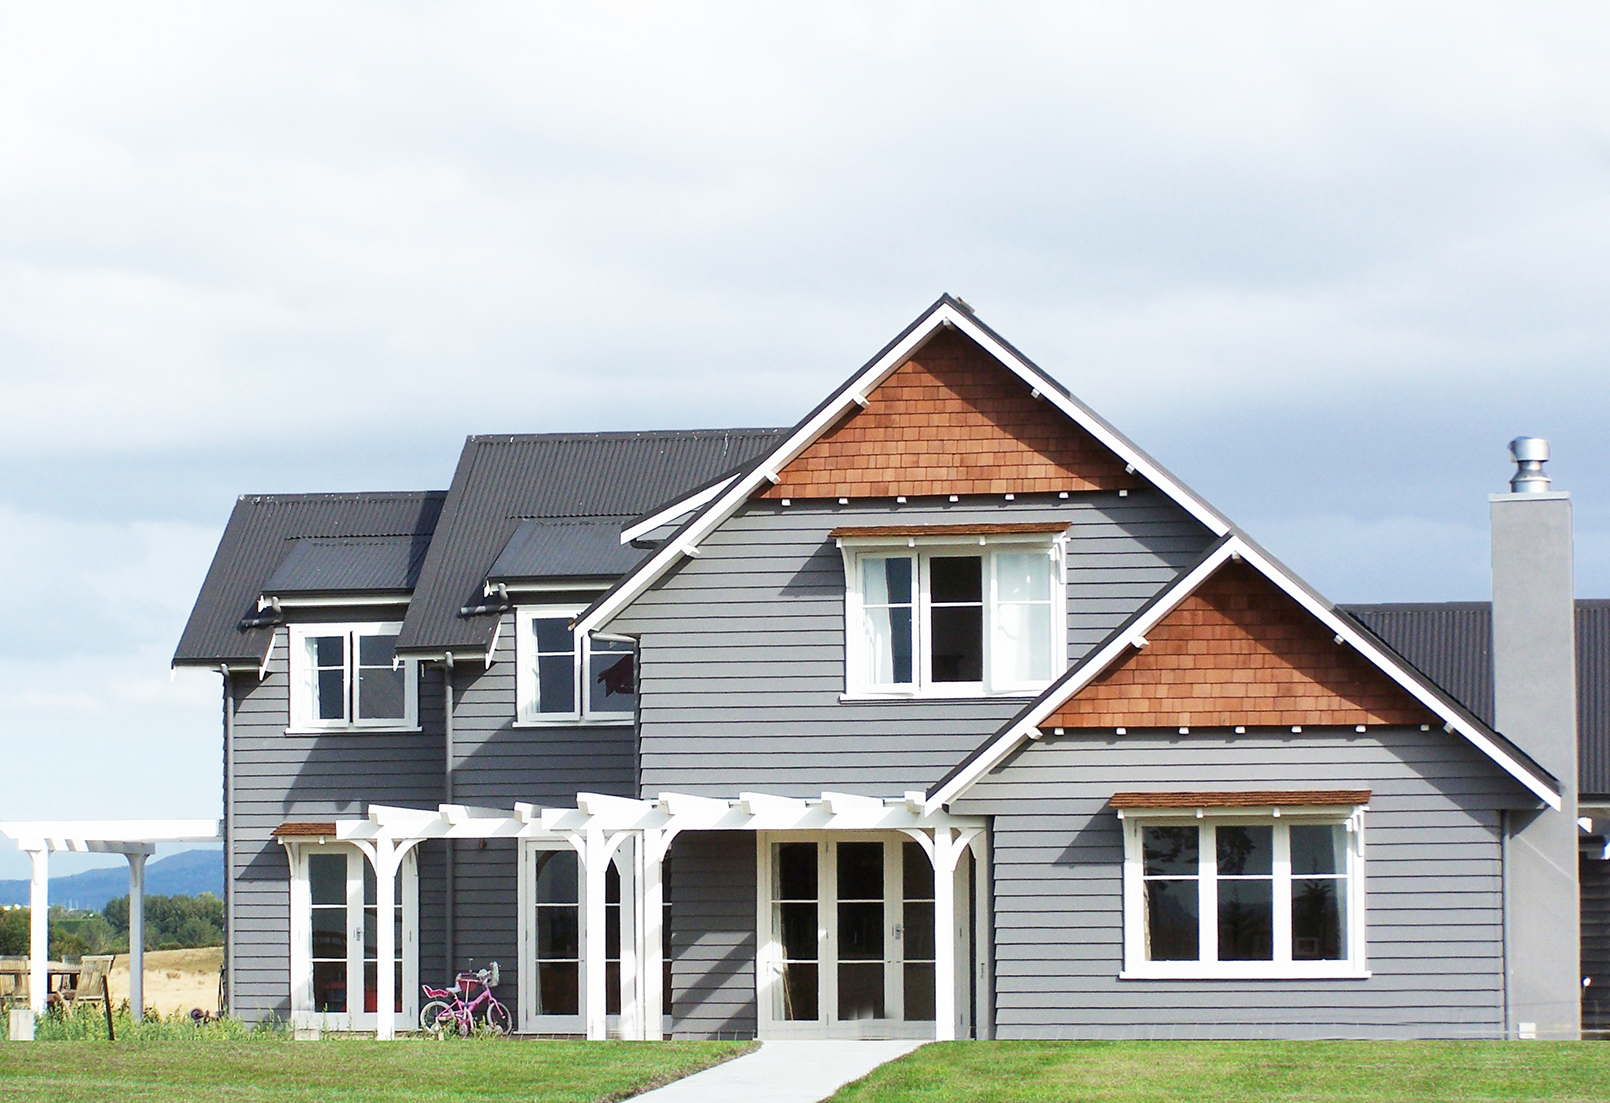 7 Popular Siding Materials To Consider: Mixed Exterior Styles